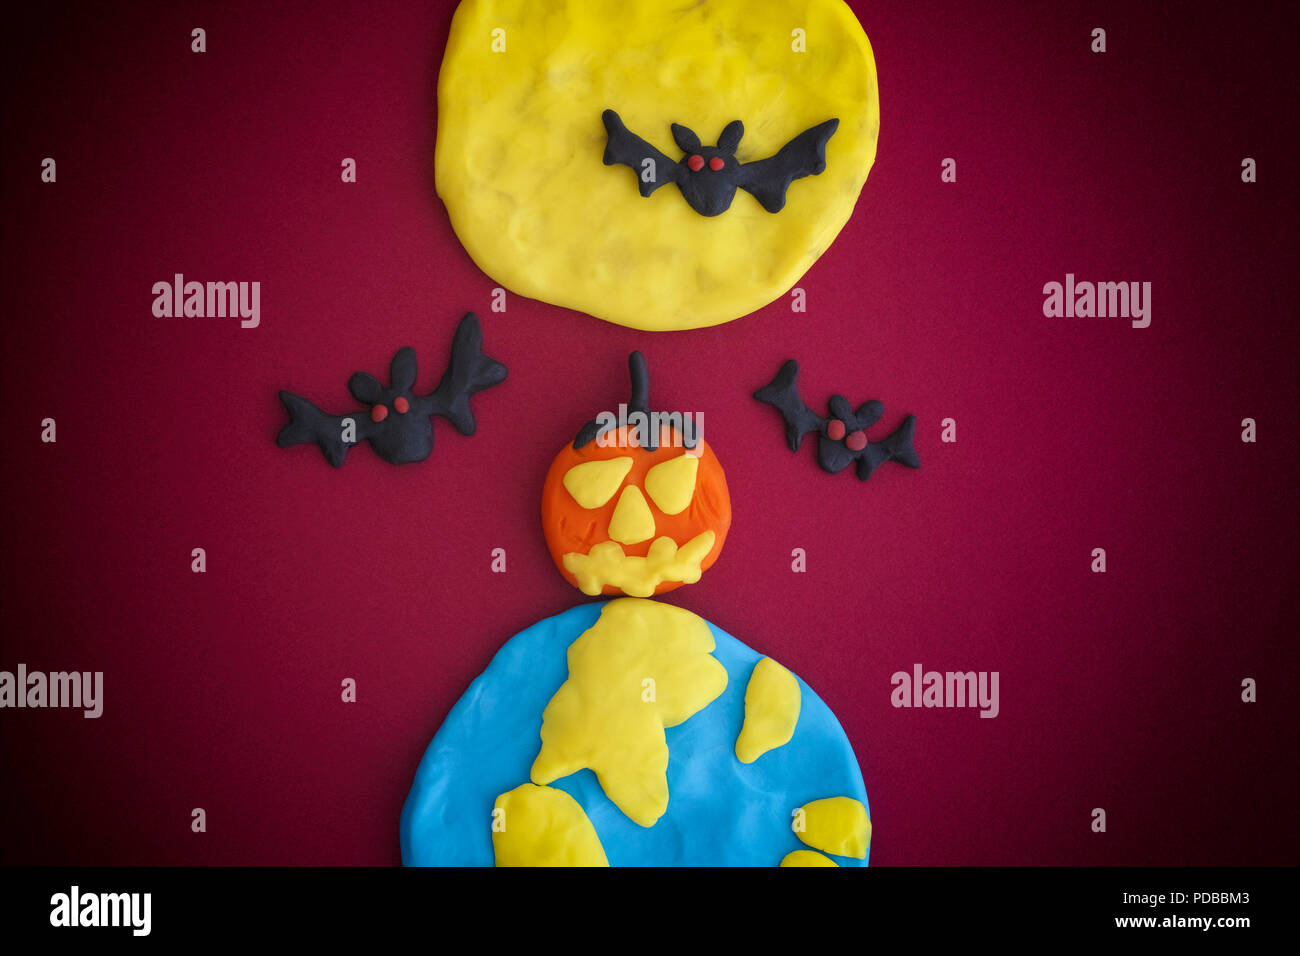 Happy Halloween. The Moon, Earth, pumpkin and bats are made out of modeling clay. - Stock Image